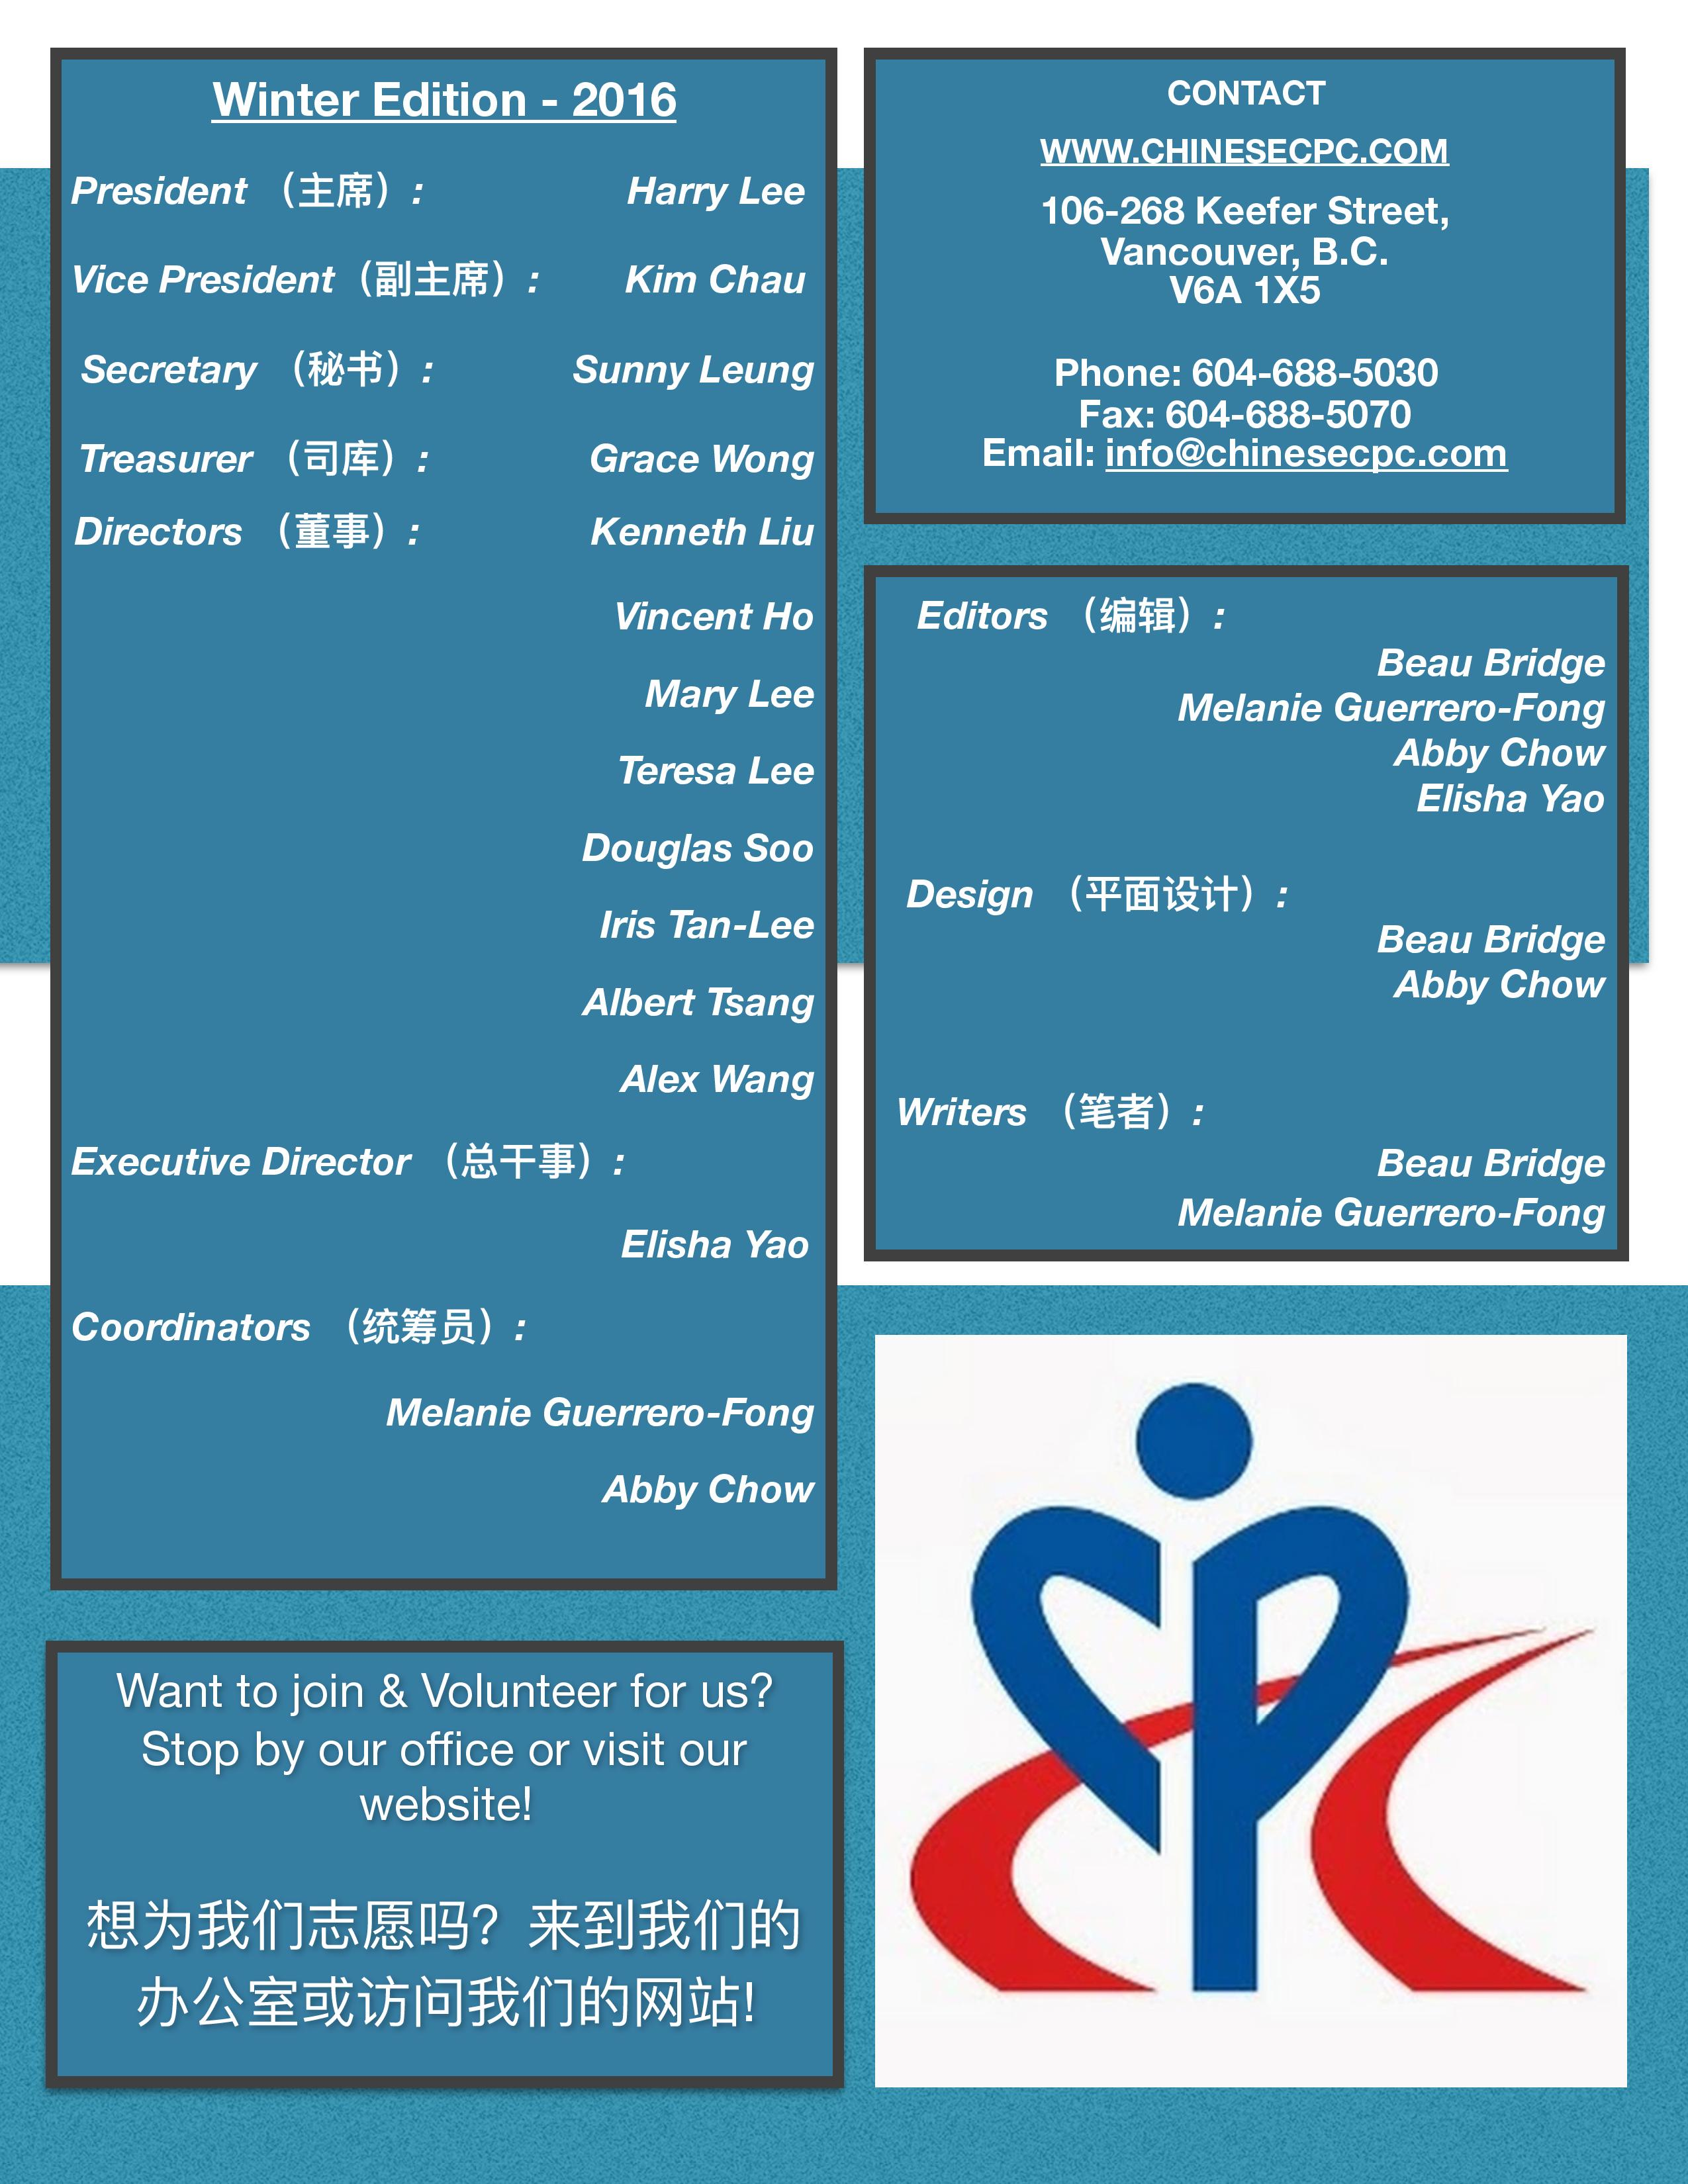 CCPC_Winter_Newsletter_Simplified_Chinese_Edition_-page-007